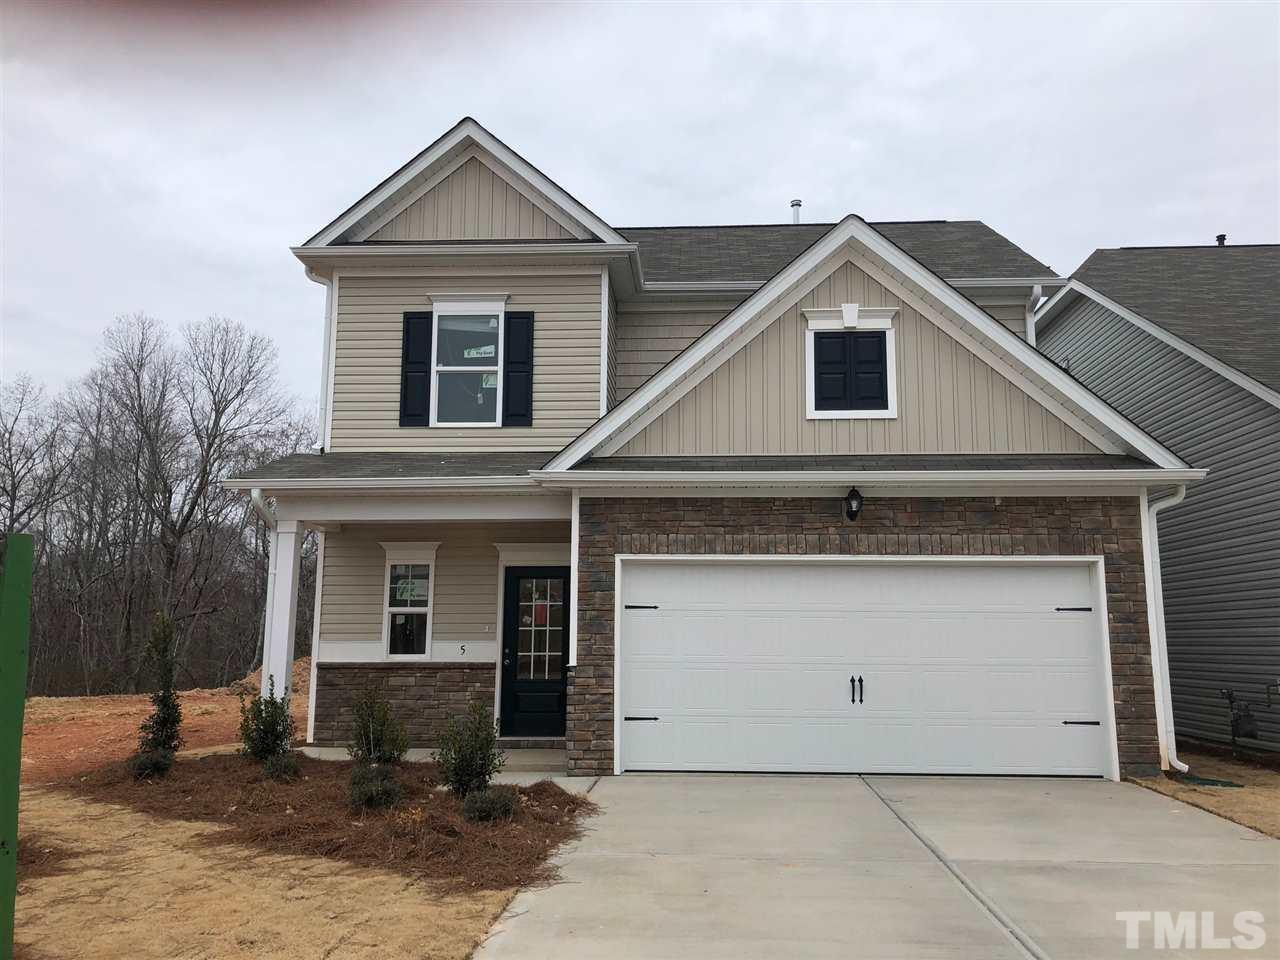 Real Estate at 5 Ashview Drive, Clayton in Johnston County, NC 27527